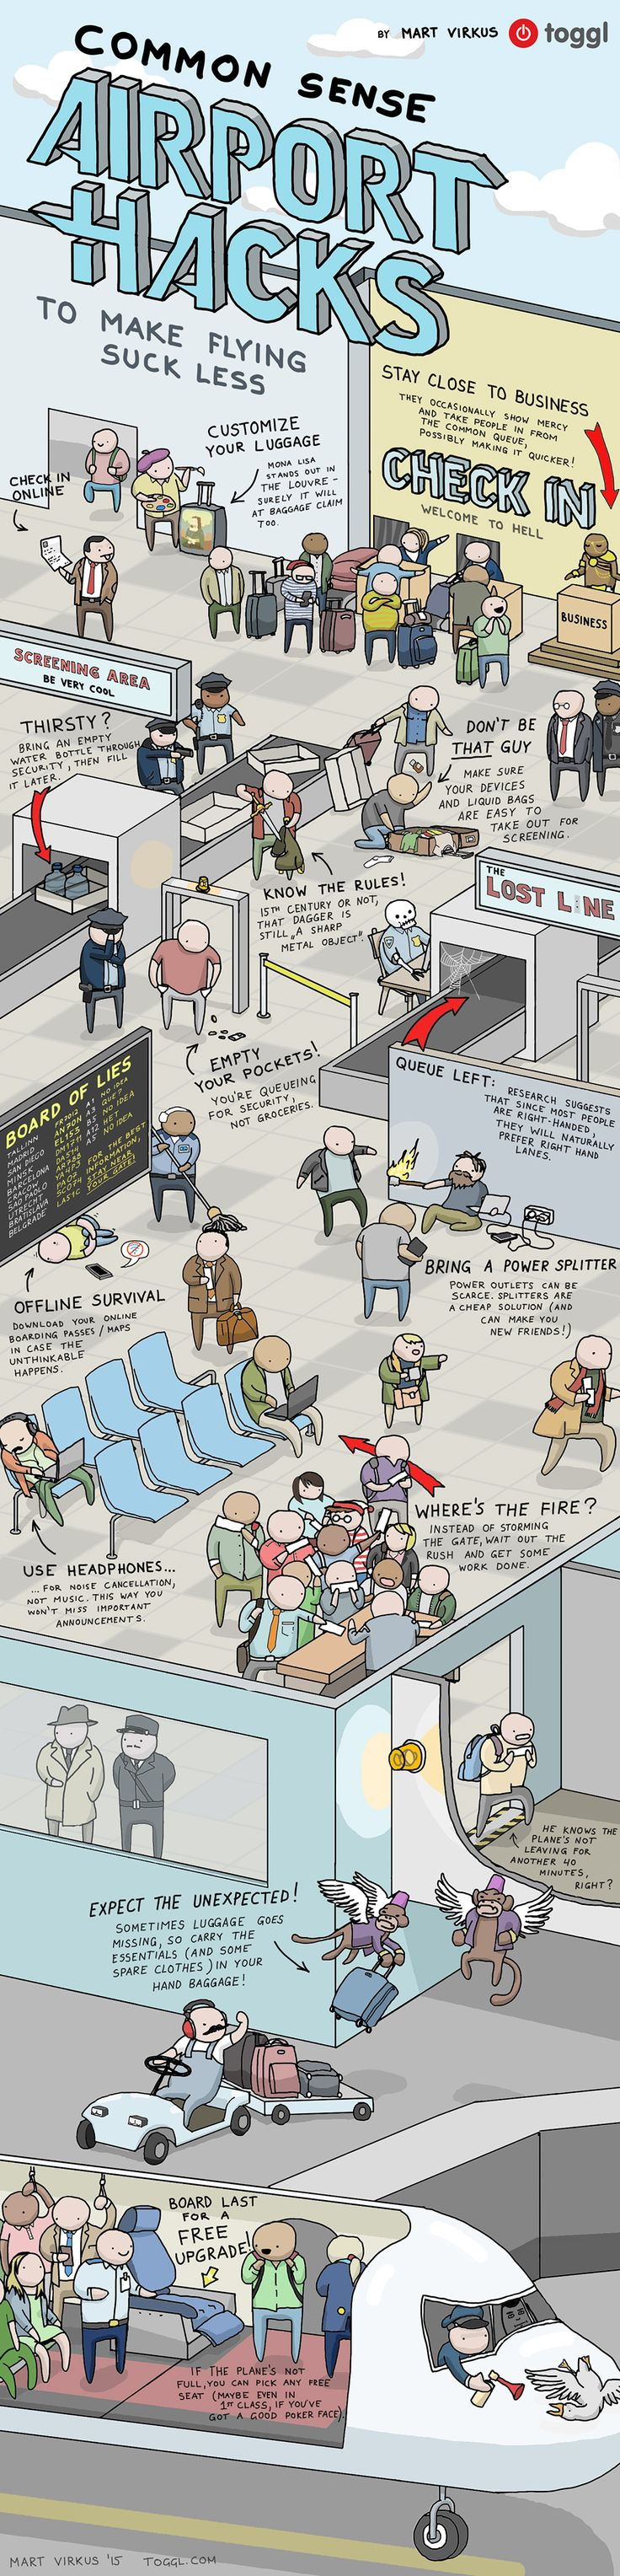 Pinner before:Airport Hacks: these are really good tips.... And they are all really true. And remember JAMESON: they won't let you take knives on the plane